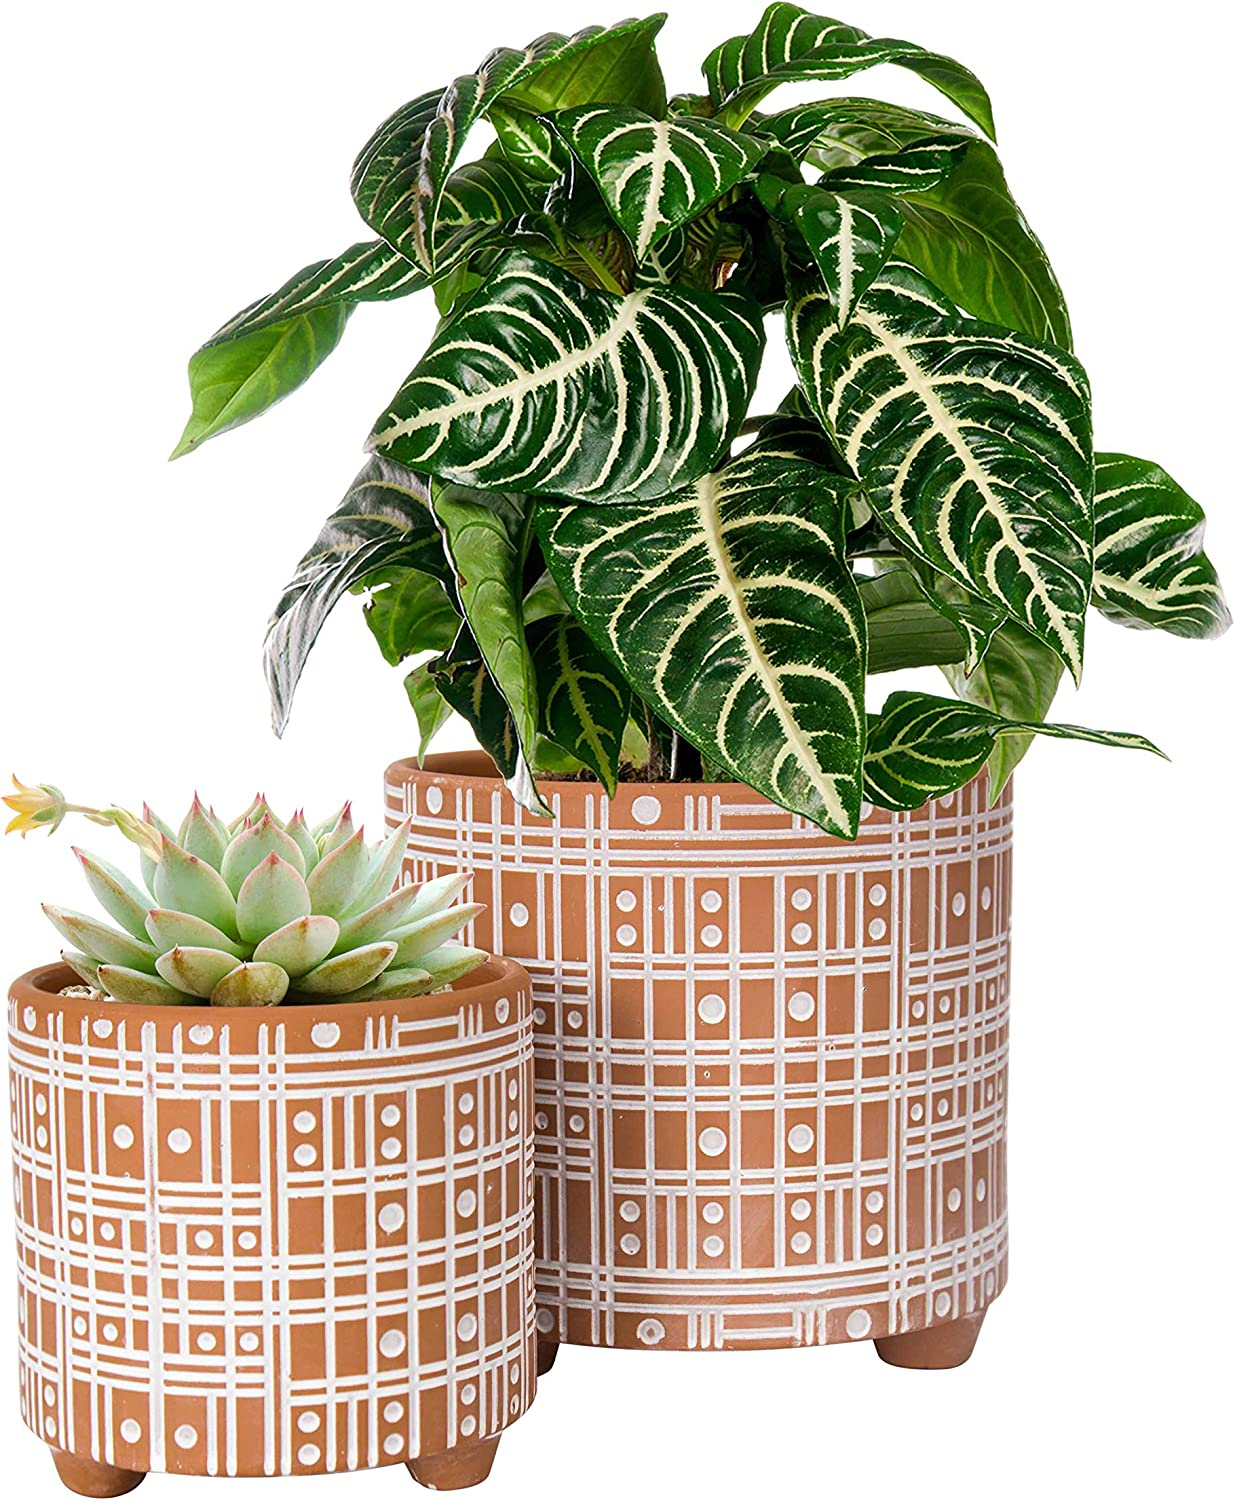 Set of 2 Planter Pots, 4 Inch & 6 Inch, Line Pattern Design Ceramic Plants Pot with Drainage Hole, Terracotta/White